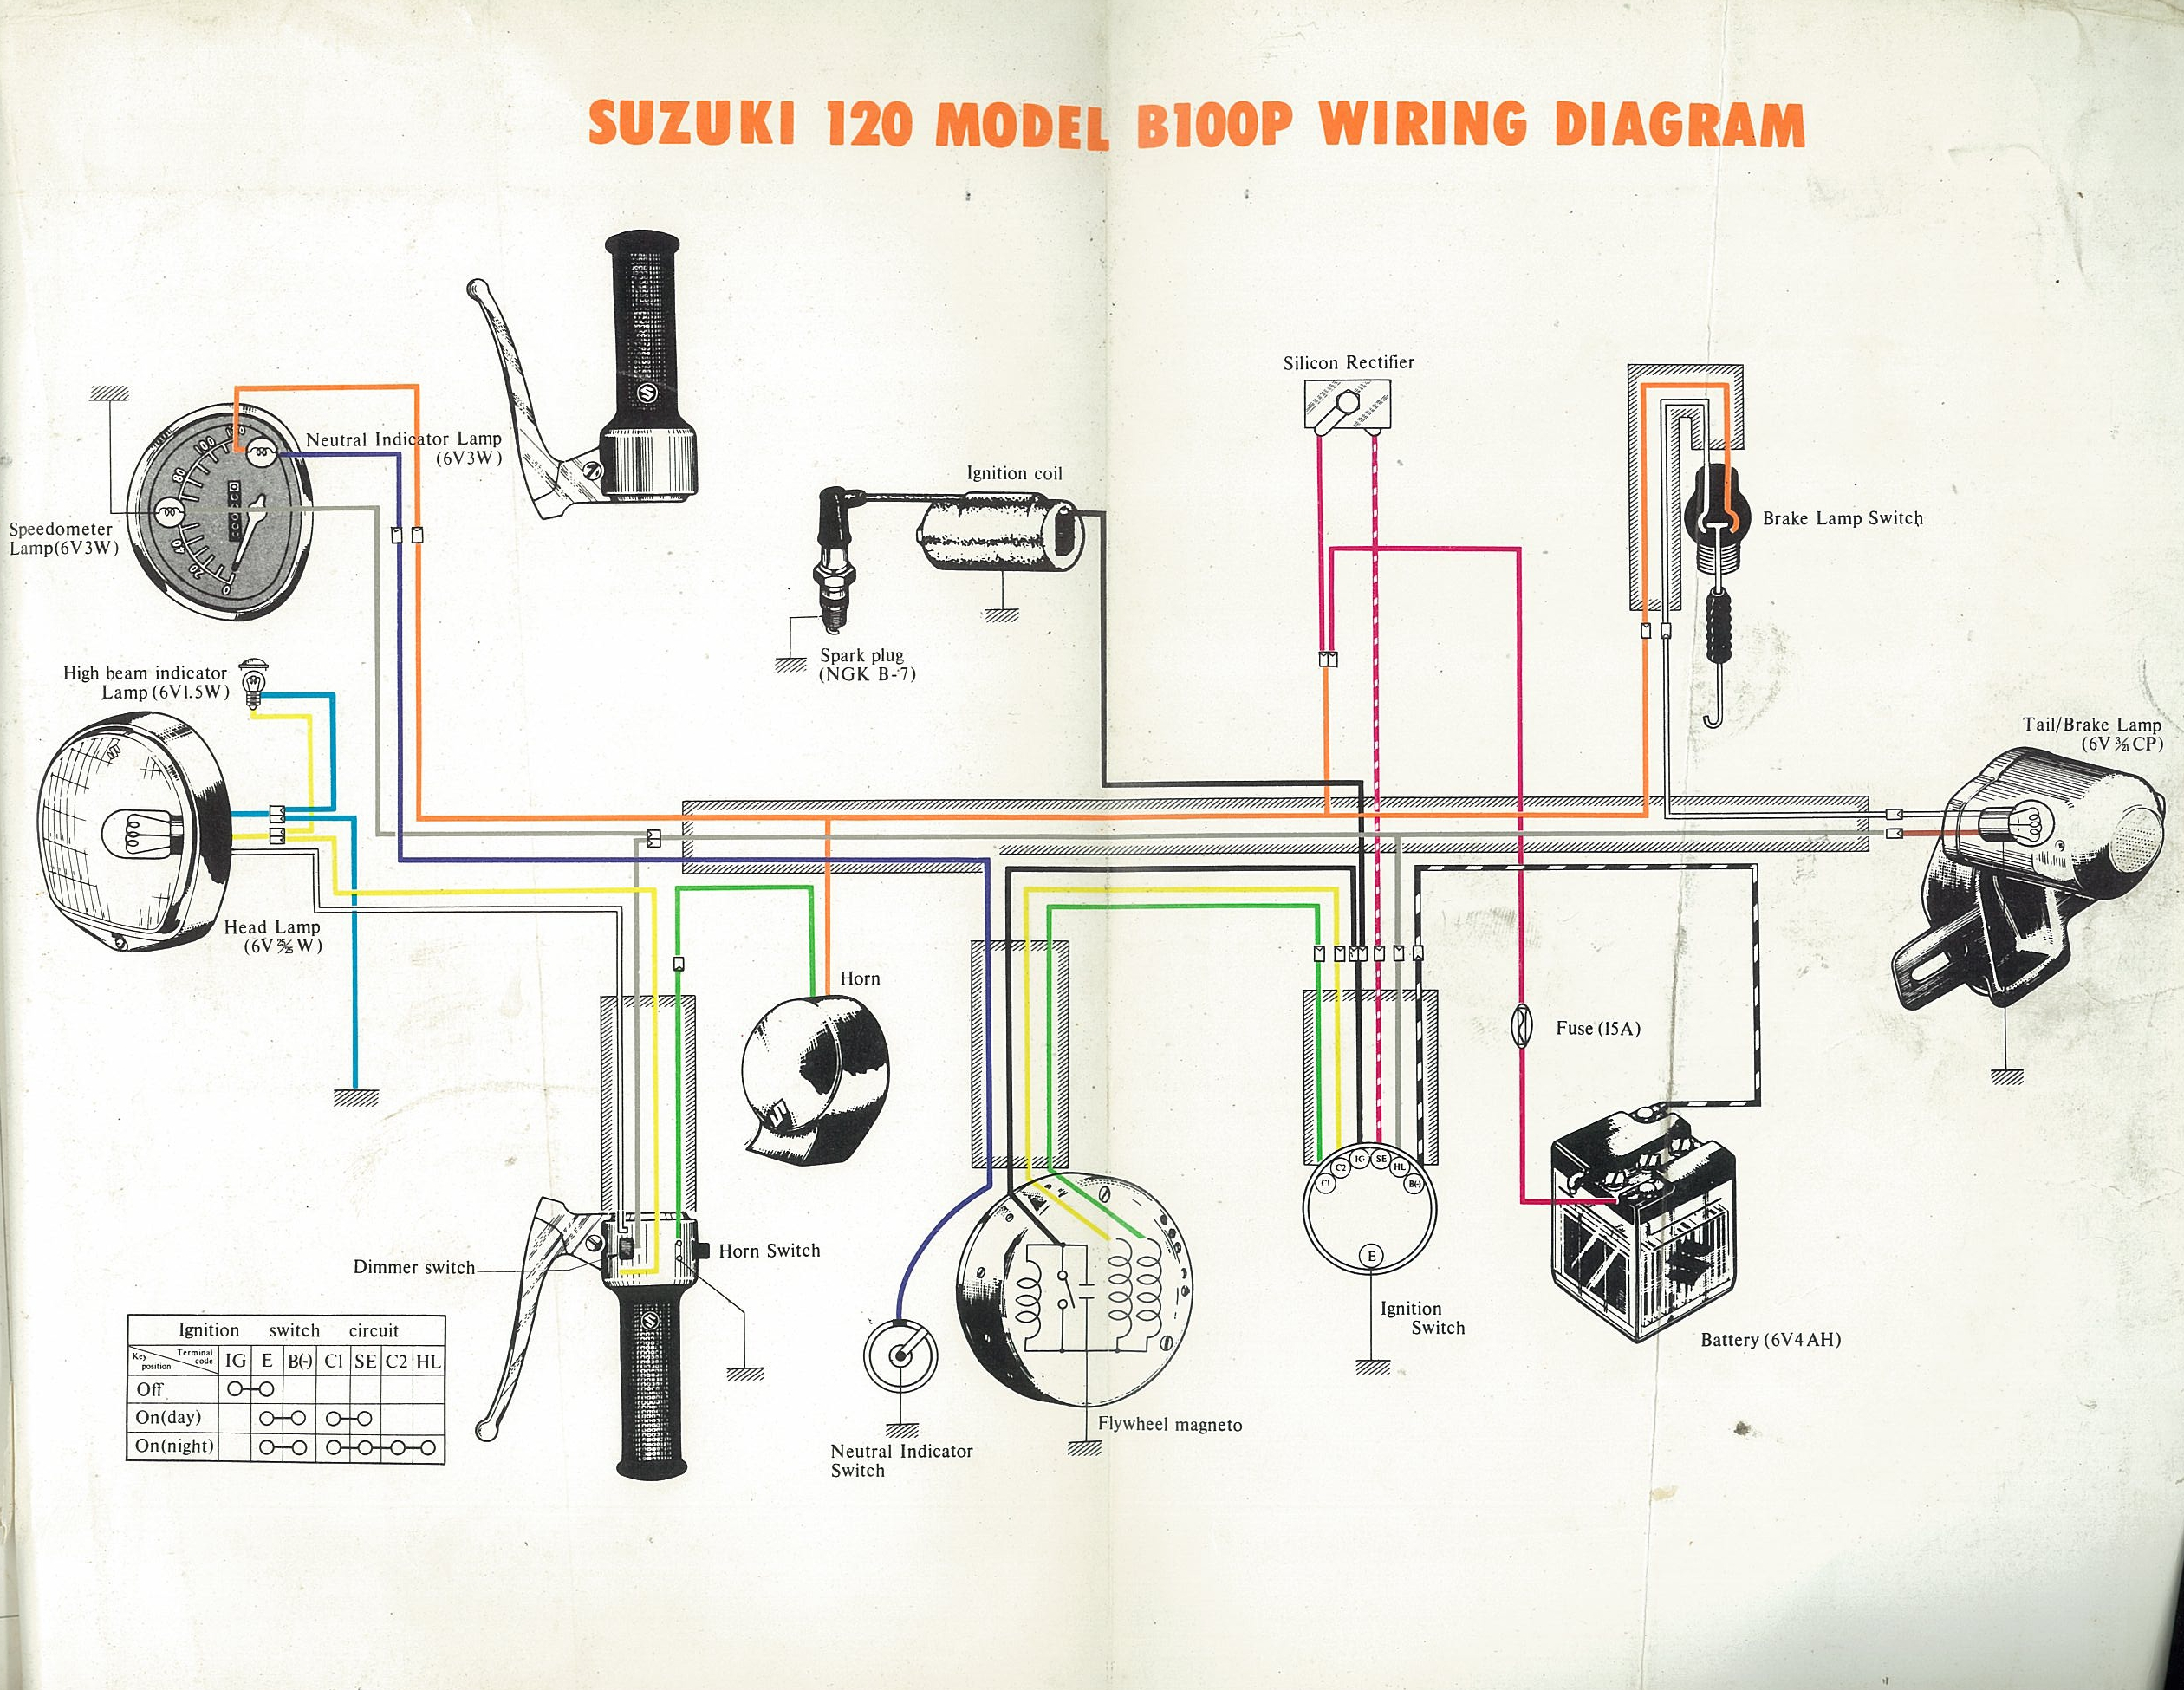 suzuki access engine diagram suzuki wiring diagrams